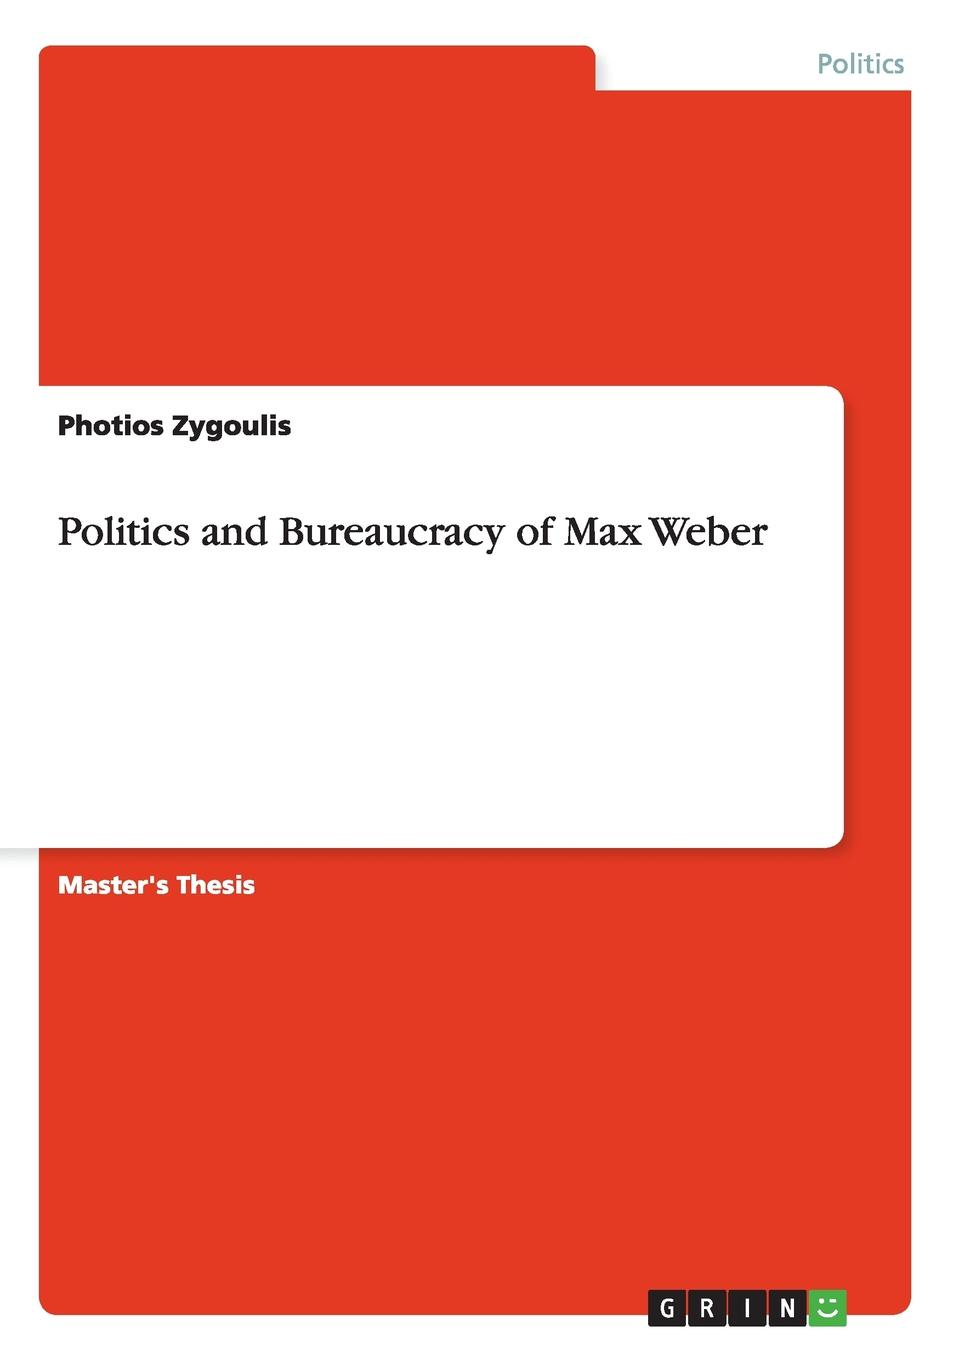 цена Photios Zygoulis Politics and Bureaucracy of Max Weber в интернет-магазинах